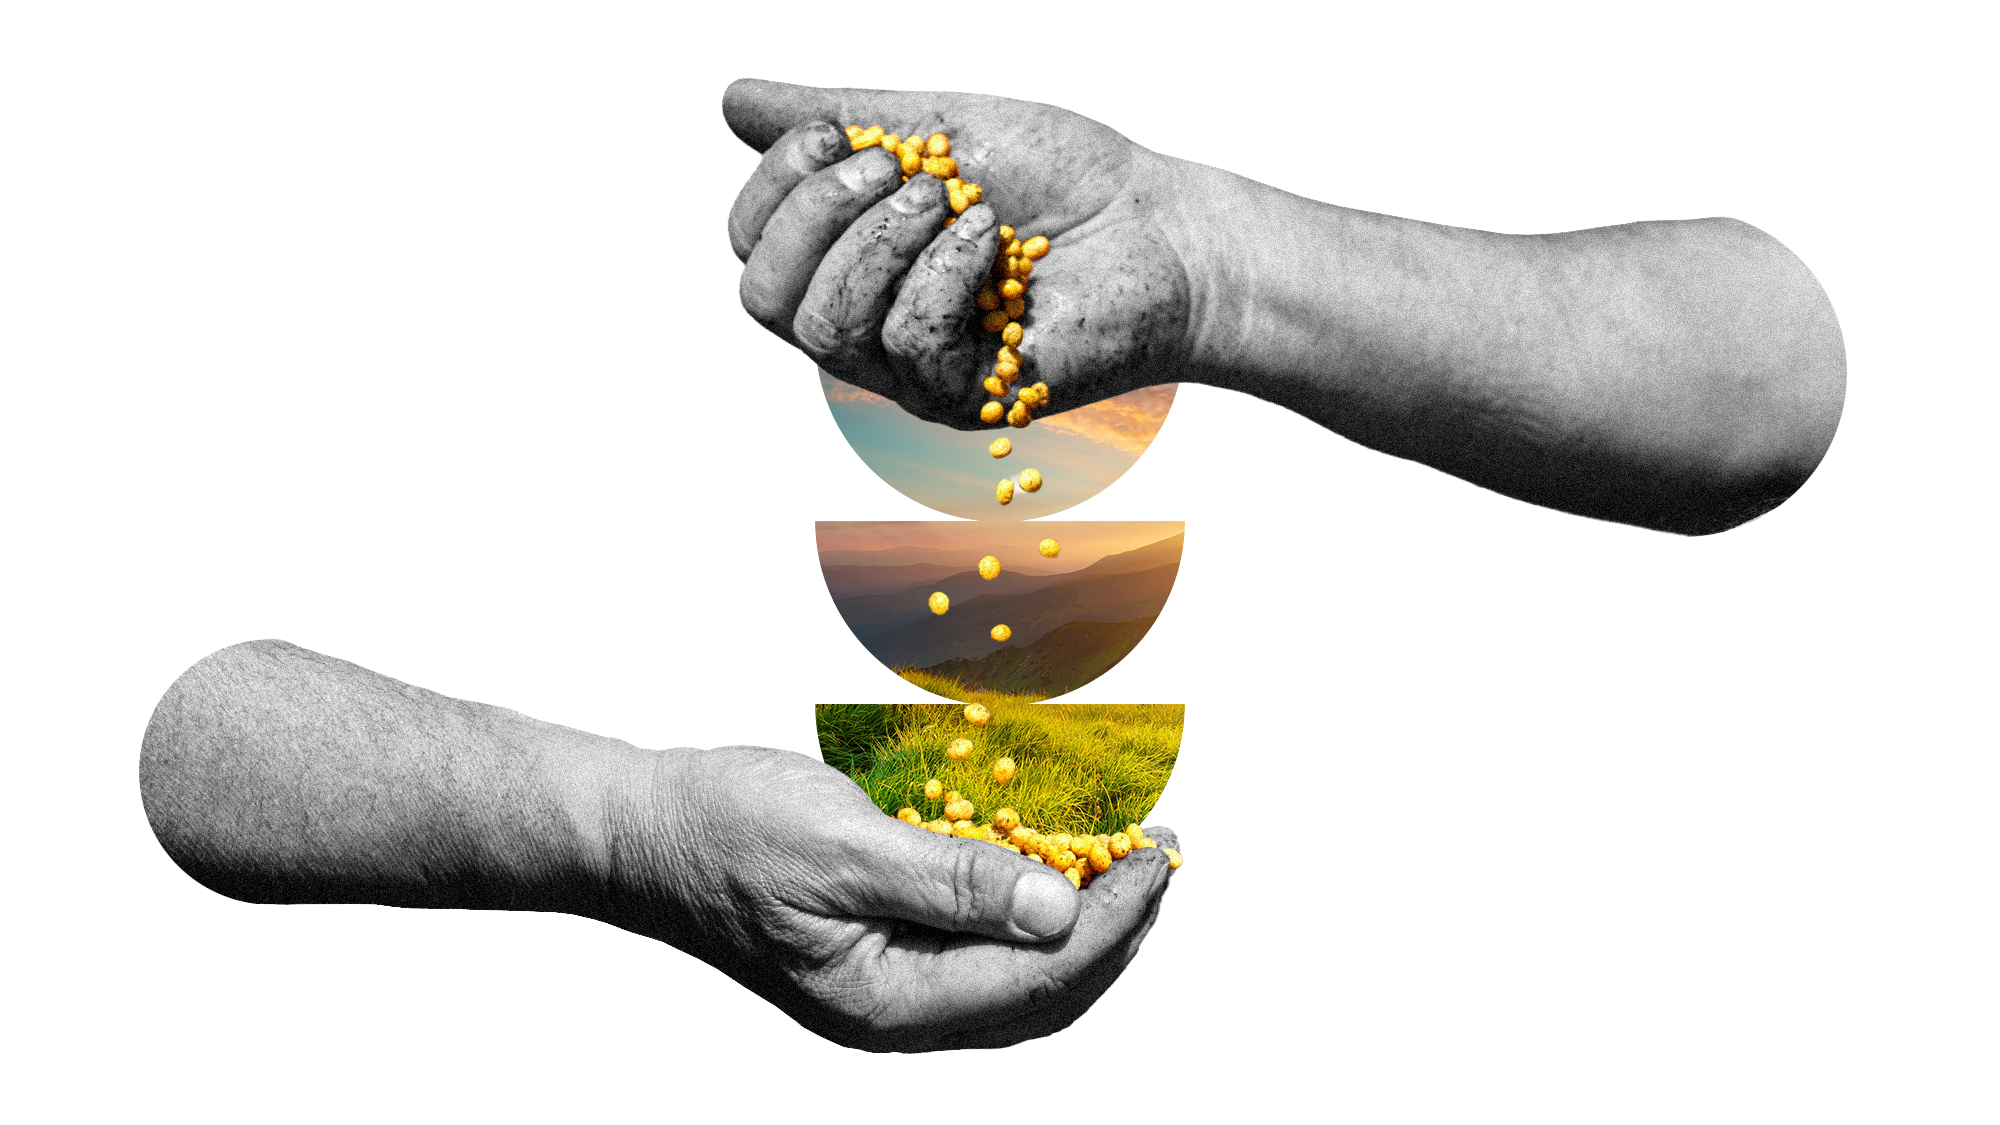 Artistic rendering of hands holding seeds